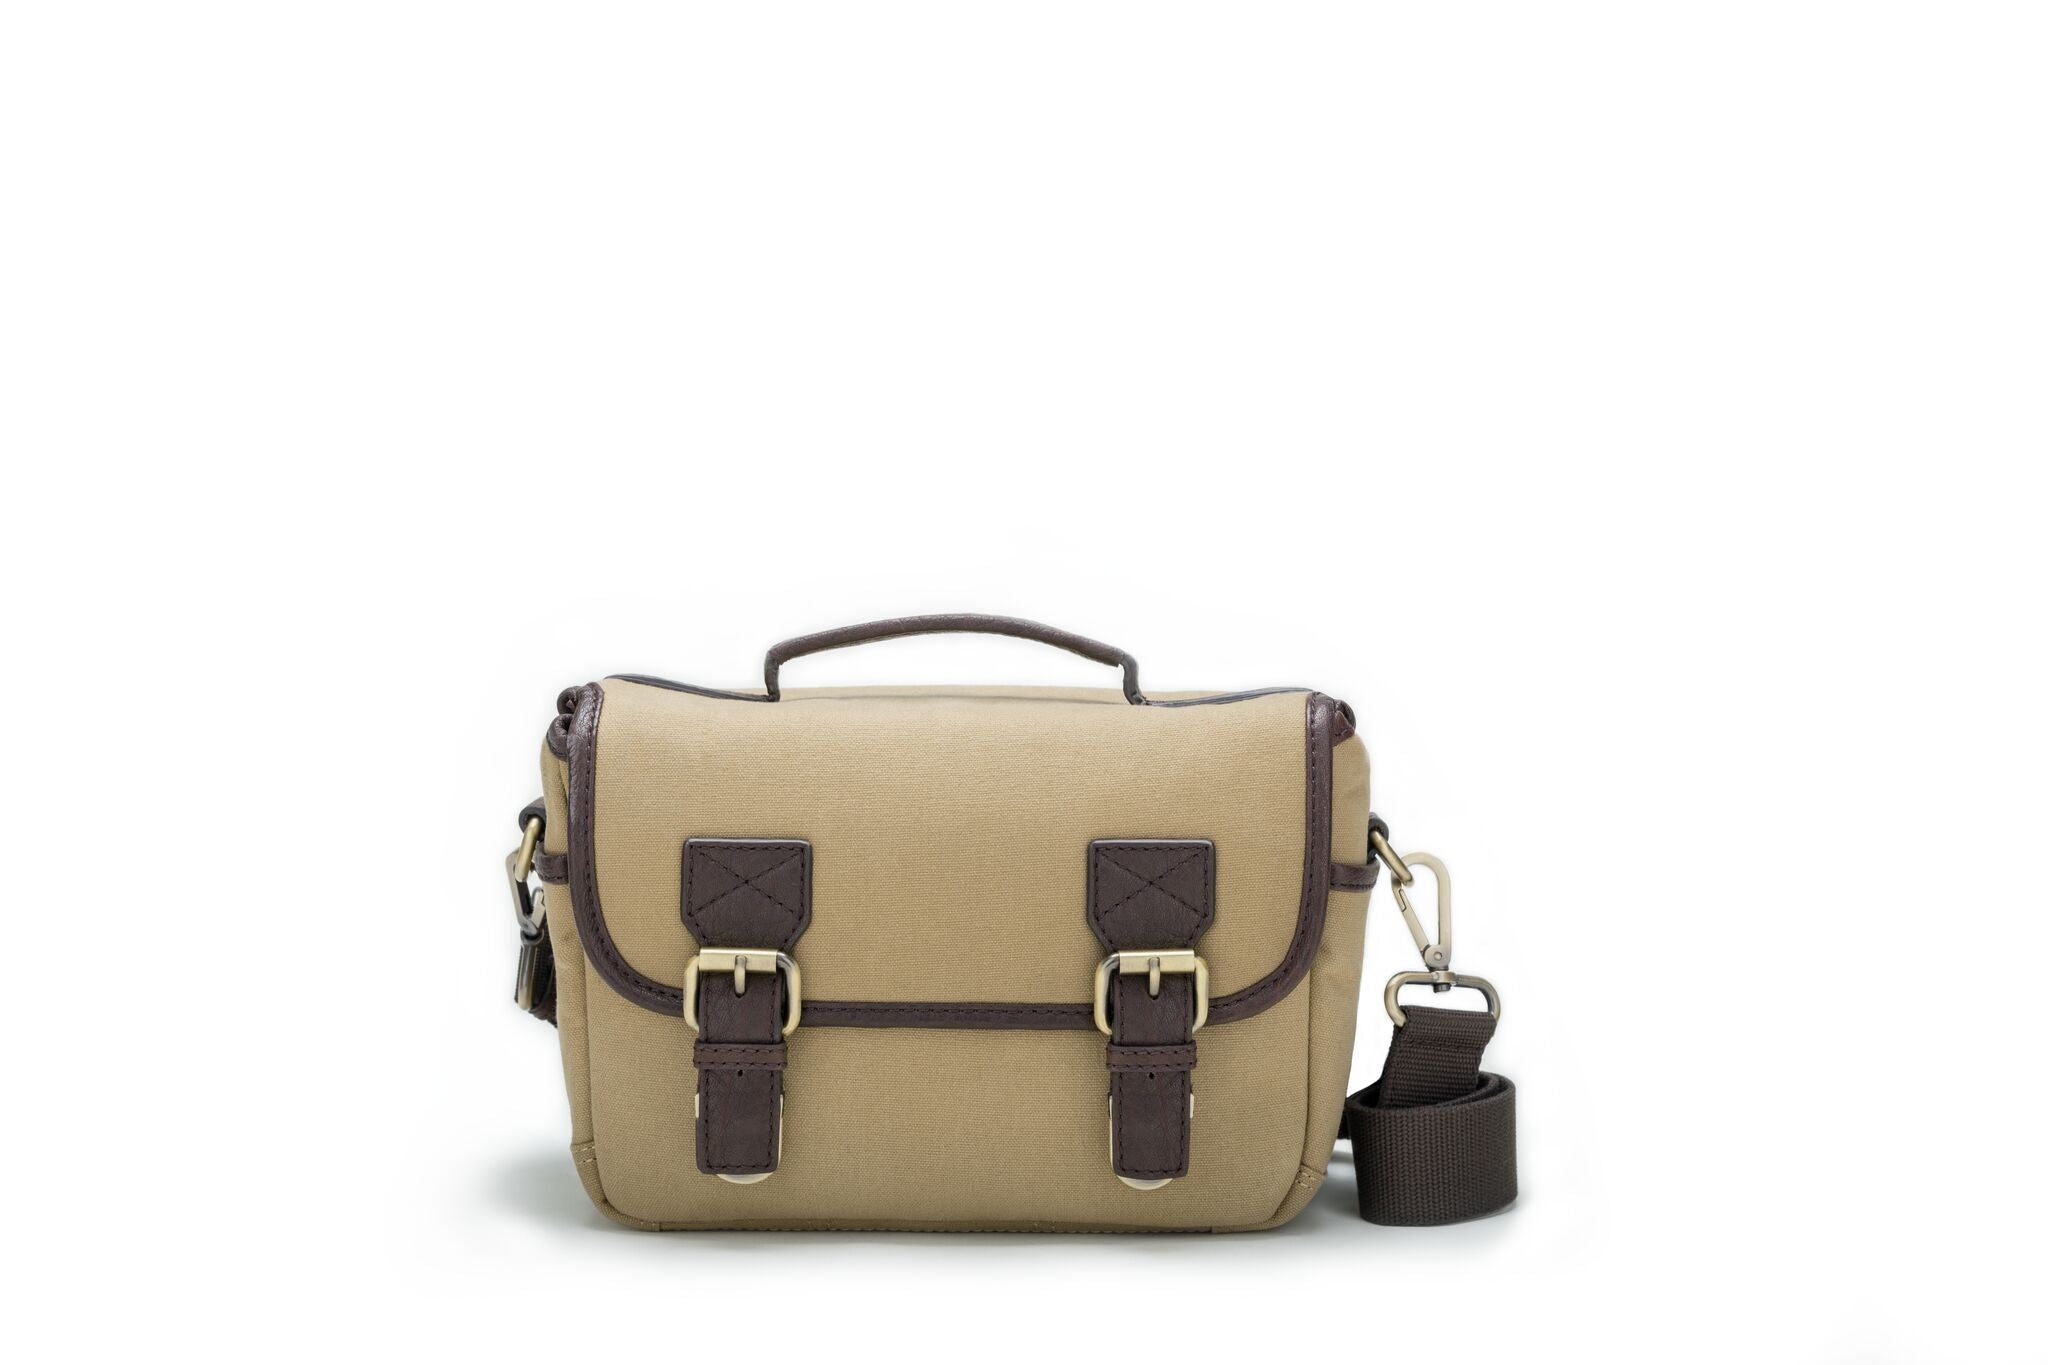 Blackforest Bags K2 small camera messenger bag